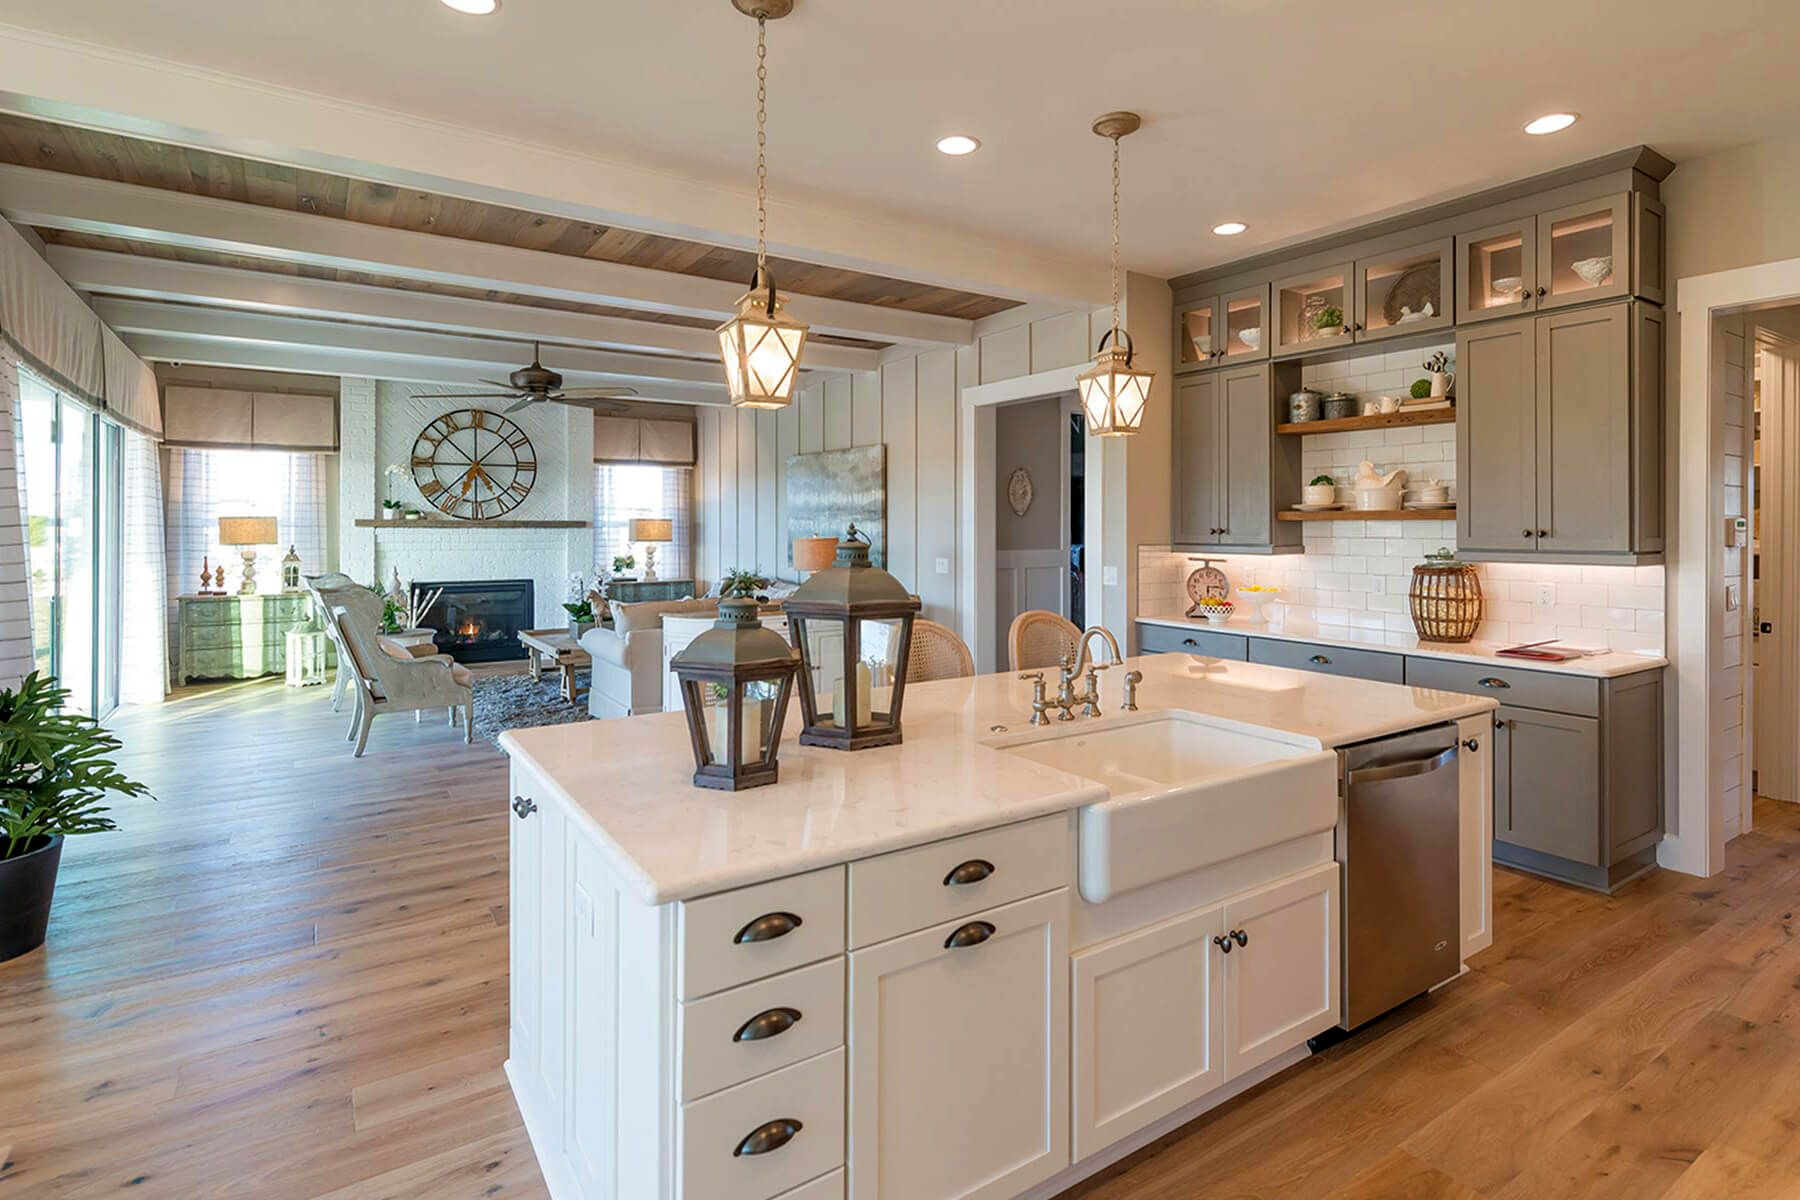 These New Homes In St Johns County Offer Up The Latest In Livability And Architecture From Florida Bungalow T Home Decor Kitchen Kitchen Remodel Home Kitchens